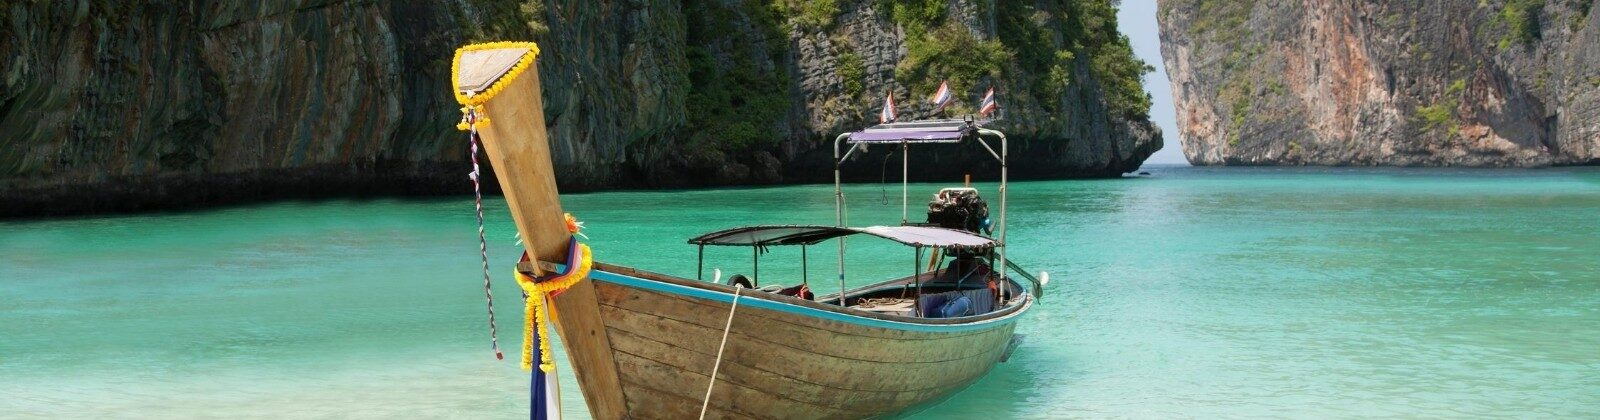 boat on the water thailand